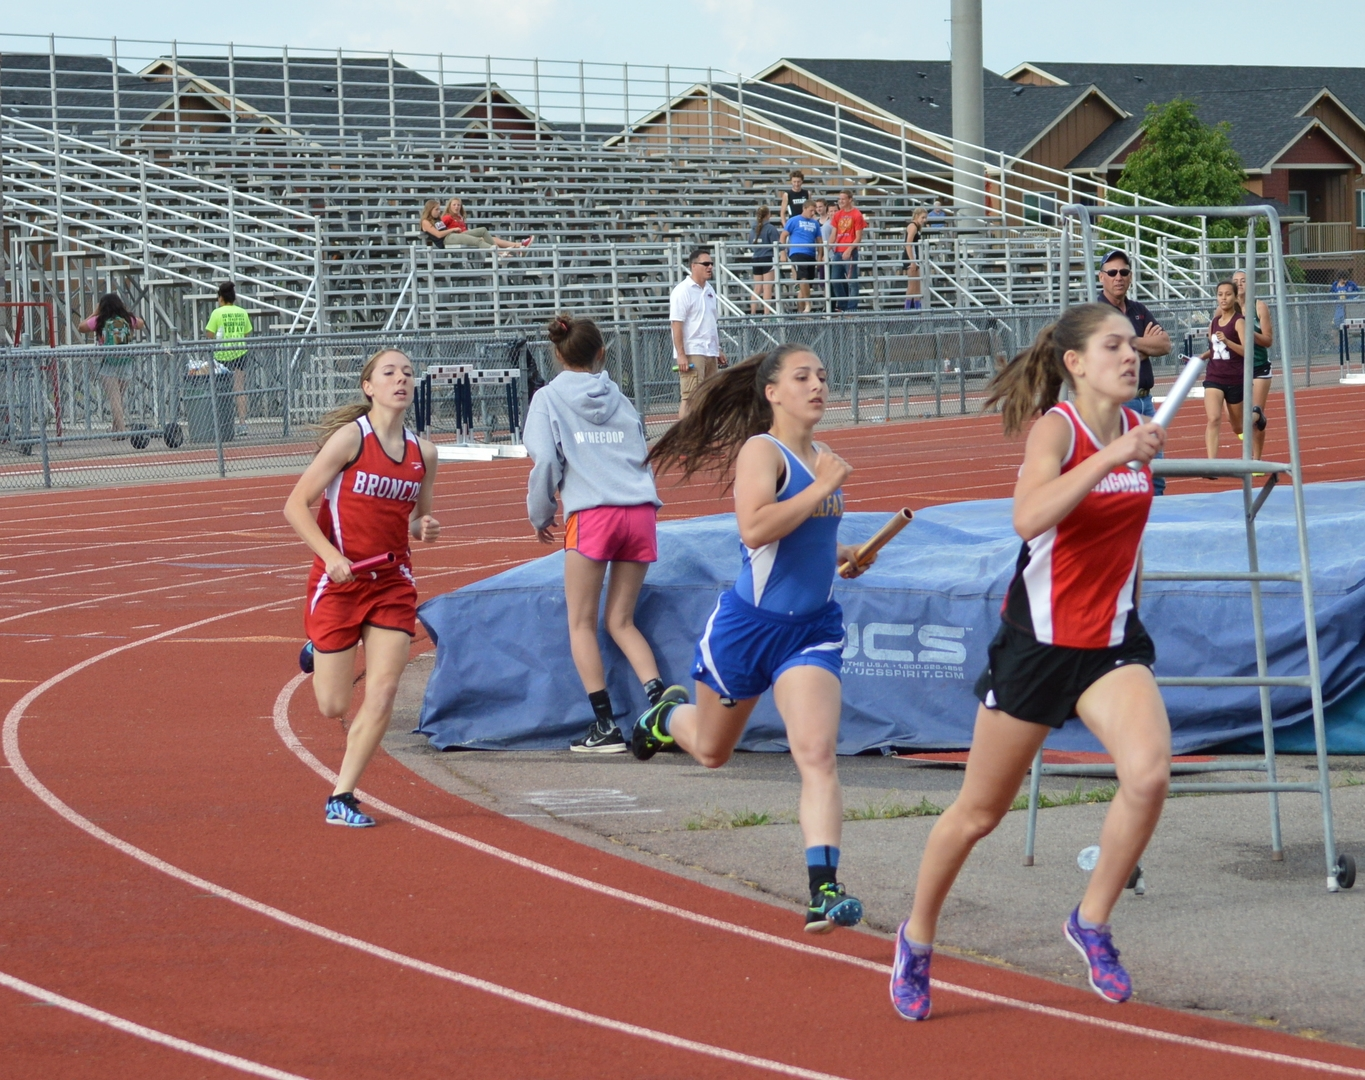 Madison Ward, St. George Academy, in the lead of the 4x400 relay.